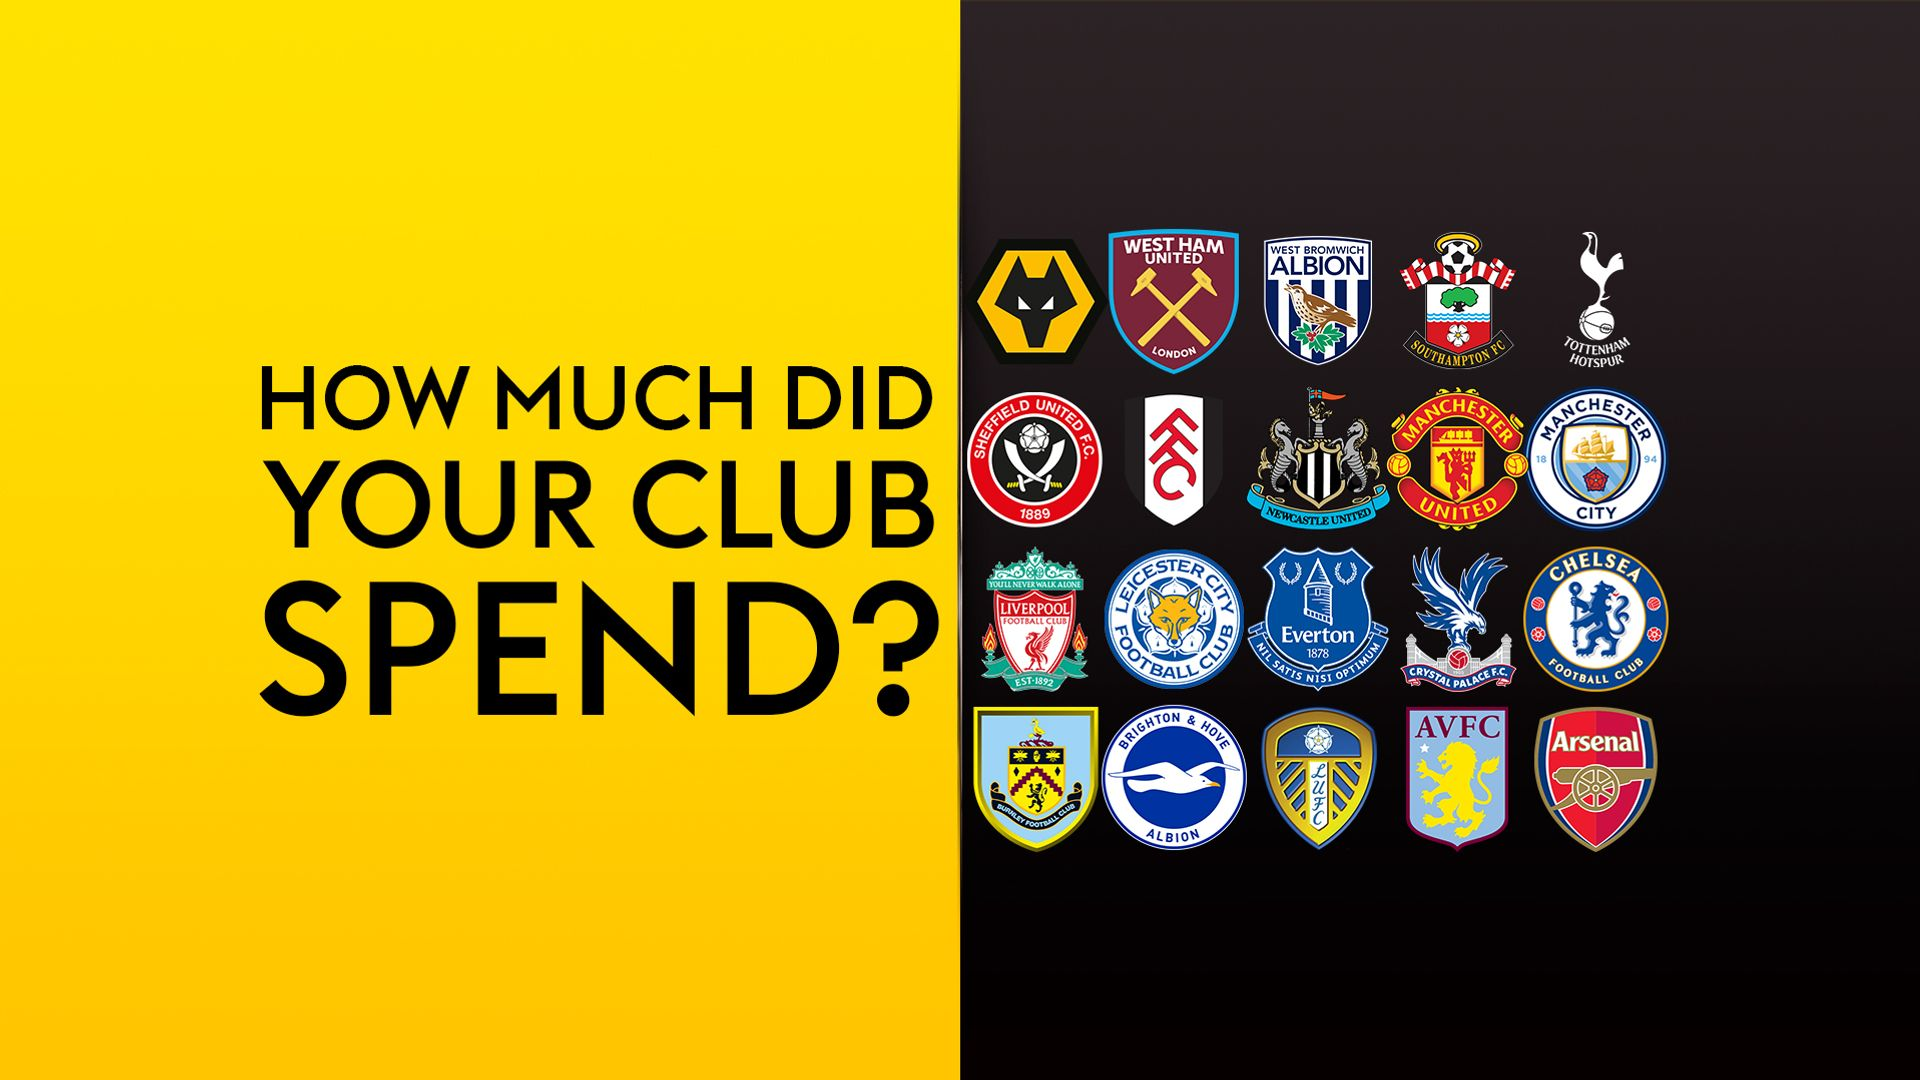 How much did your club spend?